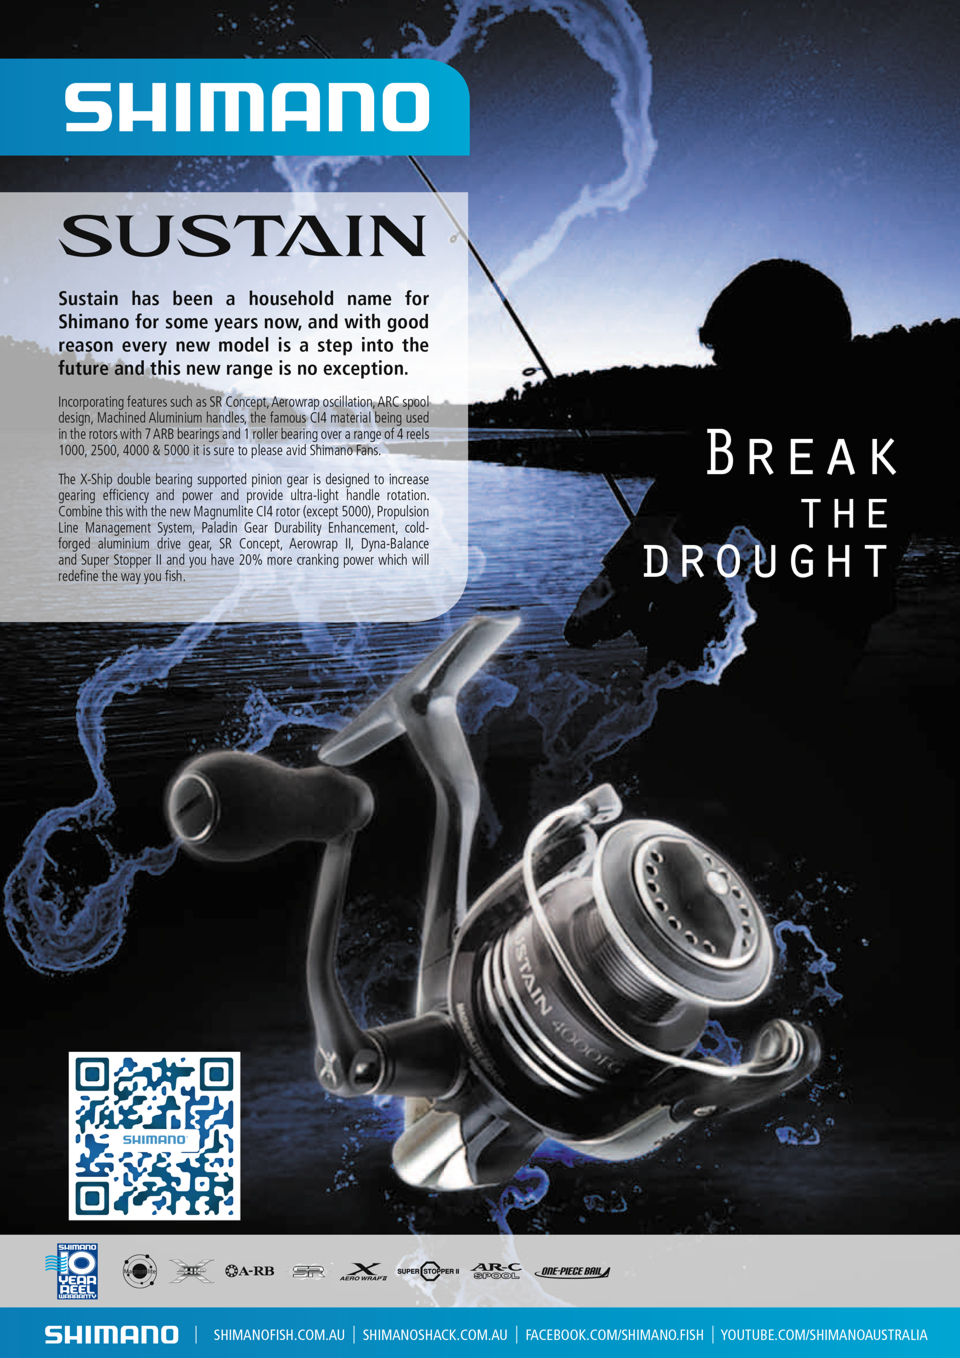 shimano sustain single page advert